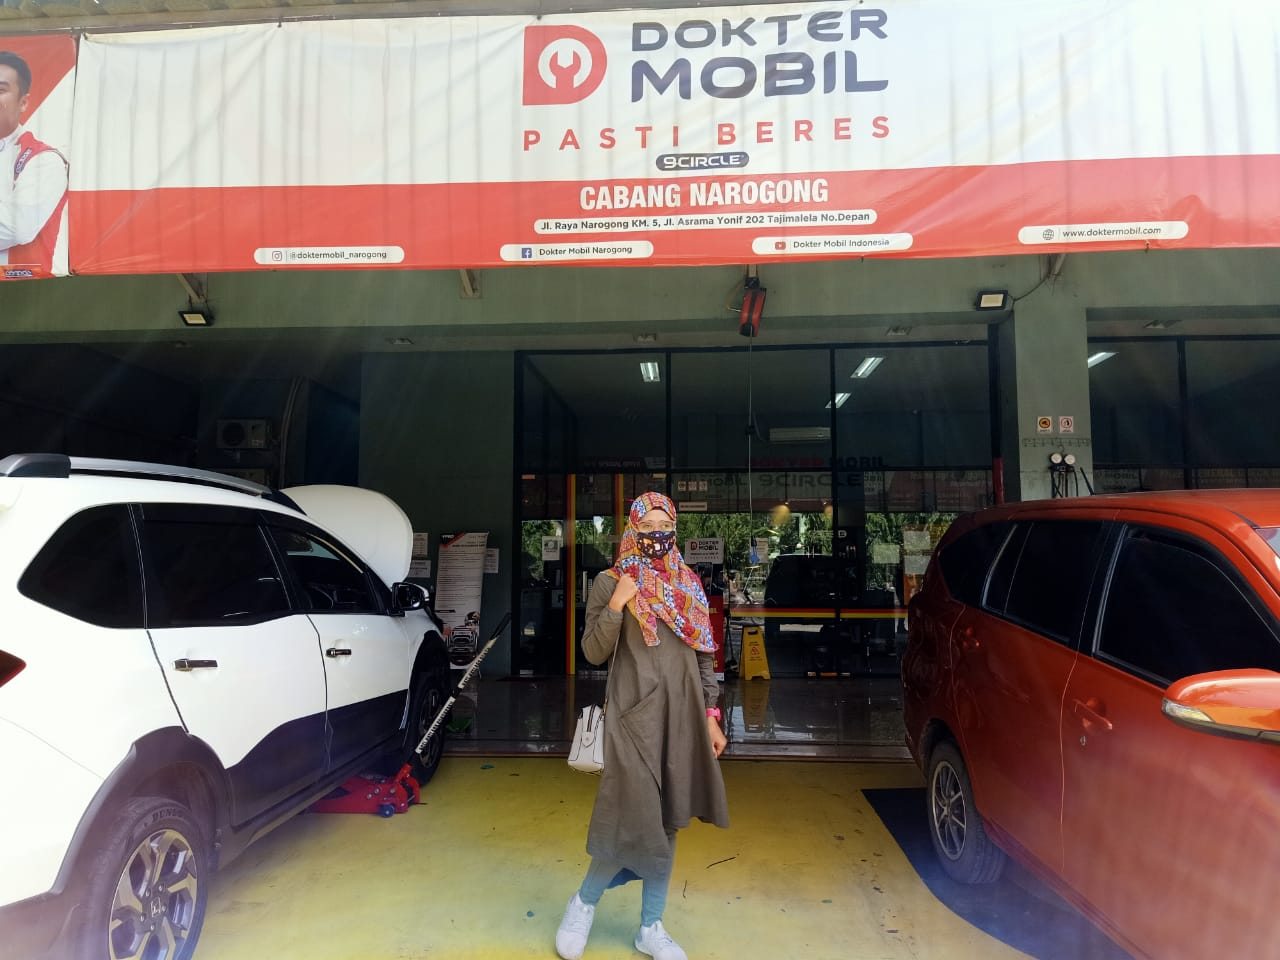 Treatment Dokter Mobil